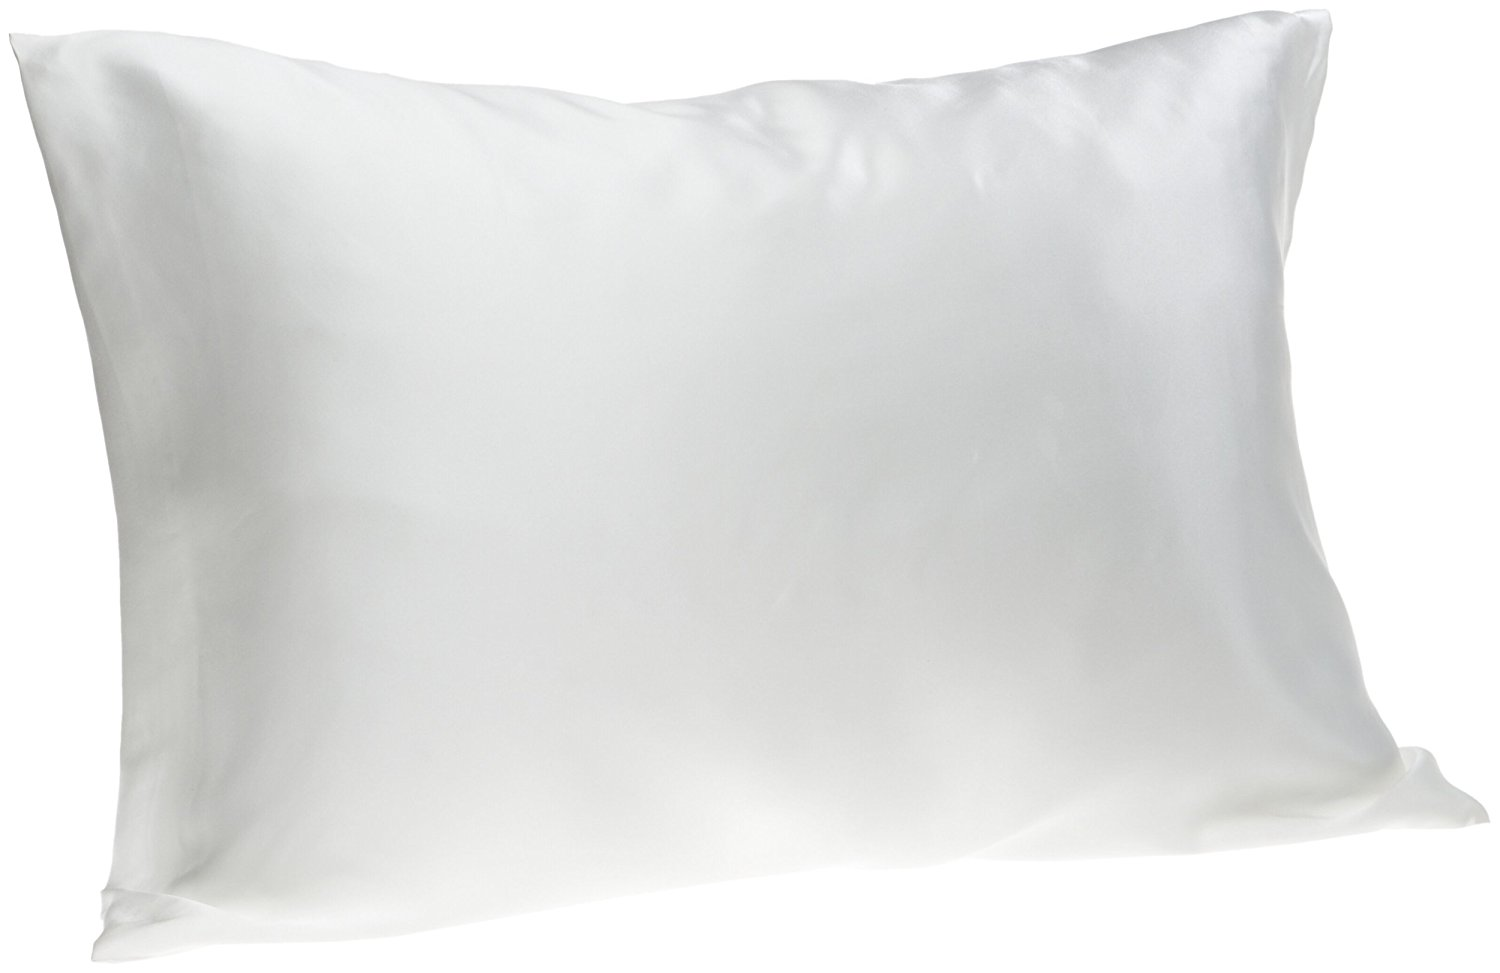 Silk Pillowcases-Spasilk 100% Pure Silk Facial Beauty Pillowcase